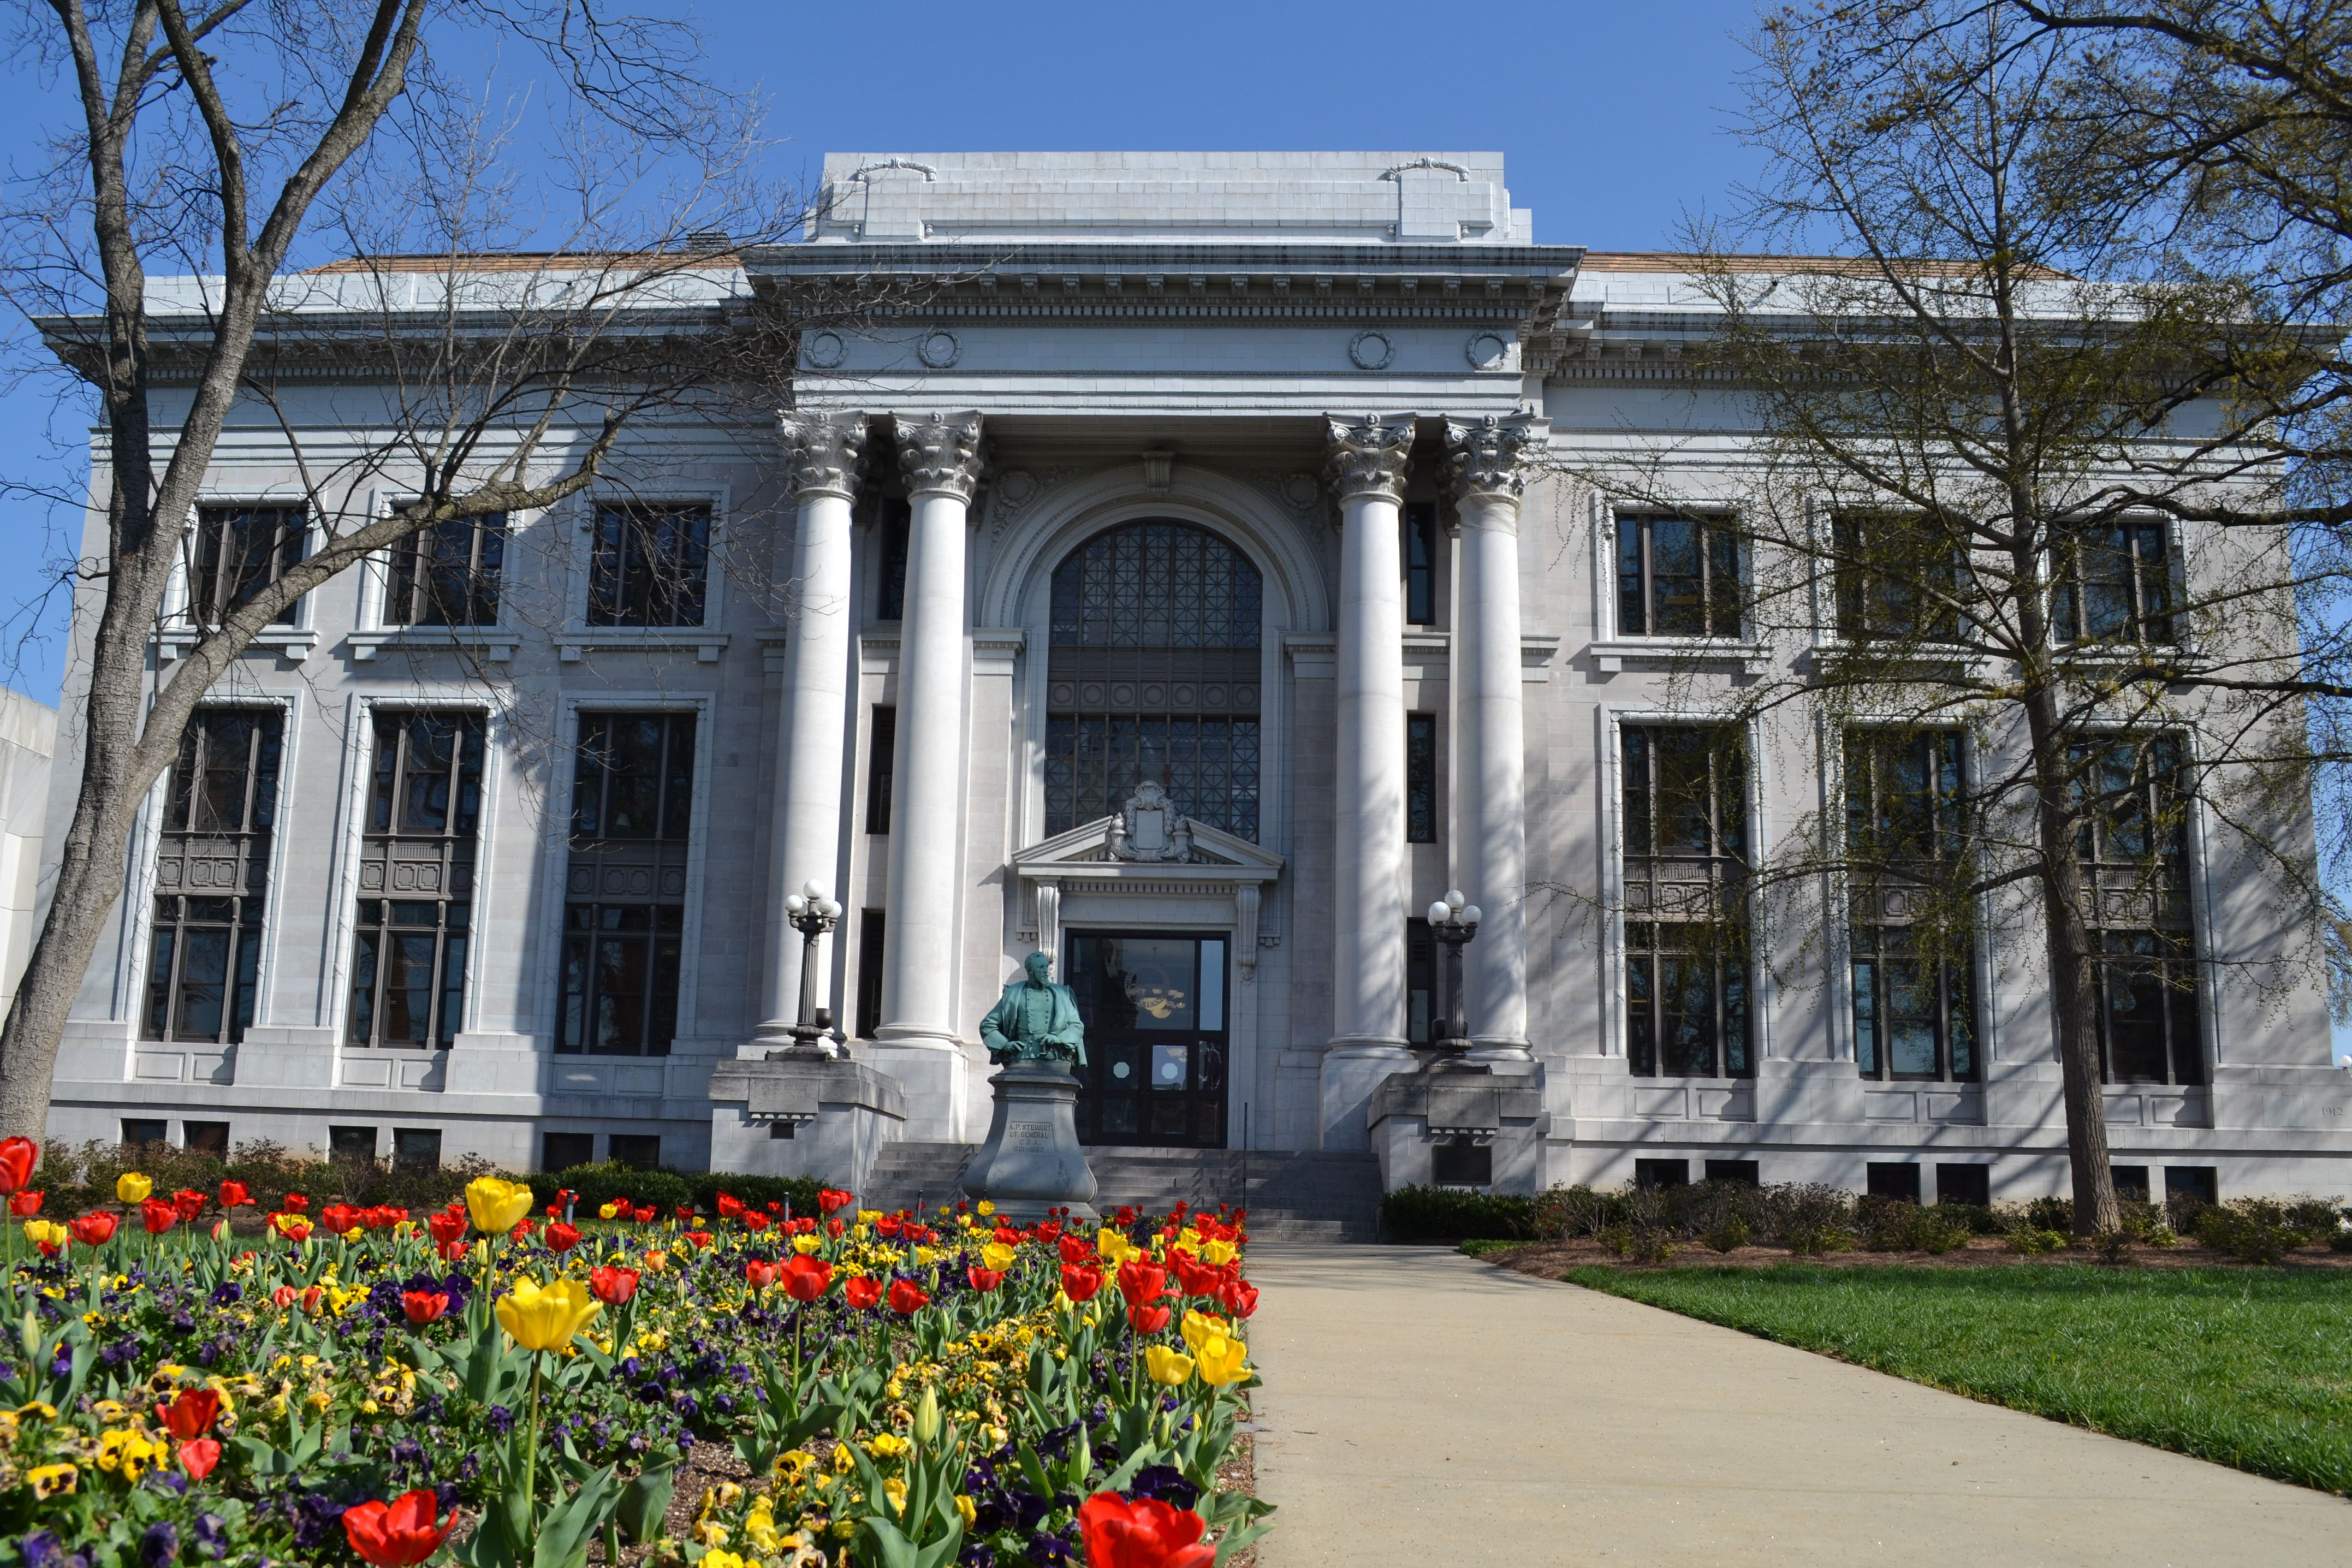 Chattanooga >> File:Hamilton County Courthouse; Chattanooga, Tennessee; April 6, 2013.JPG - Wikimedia Commons